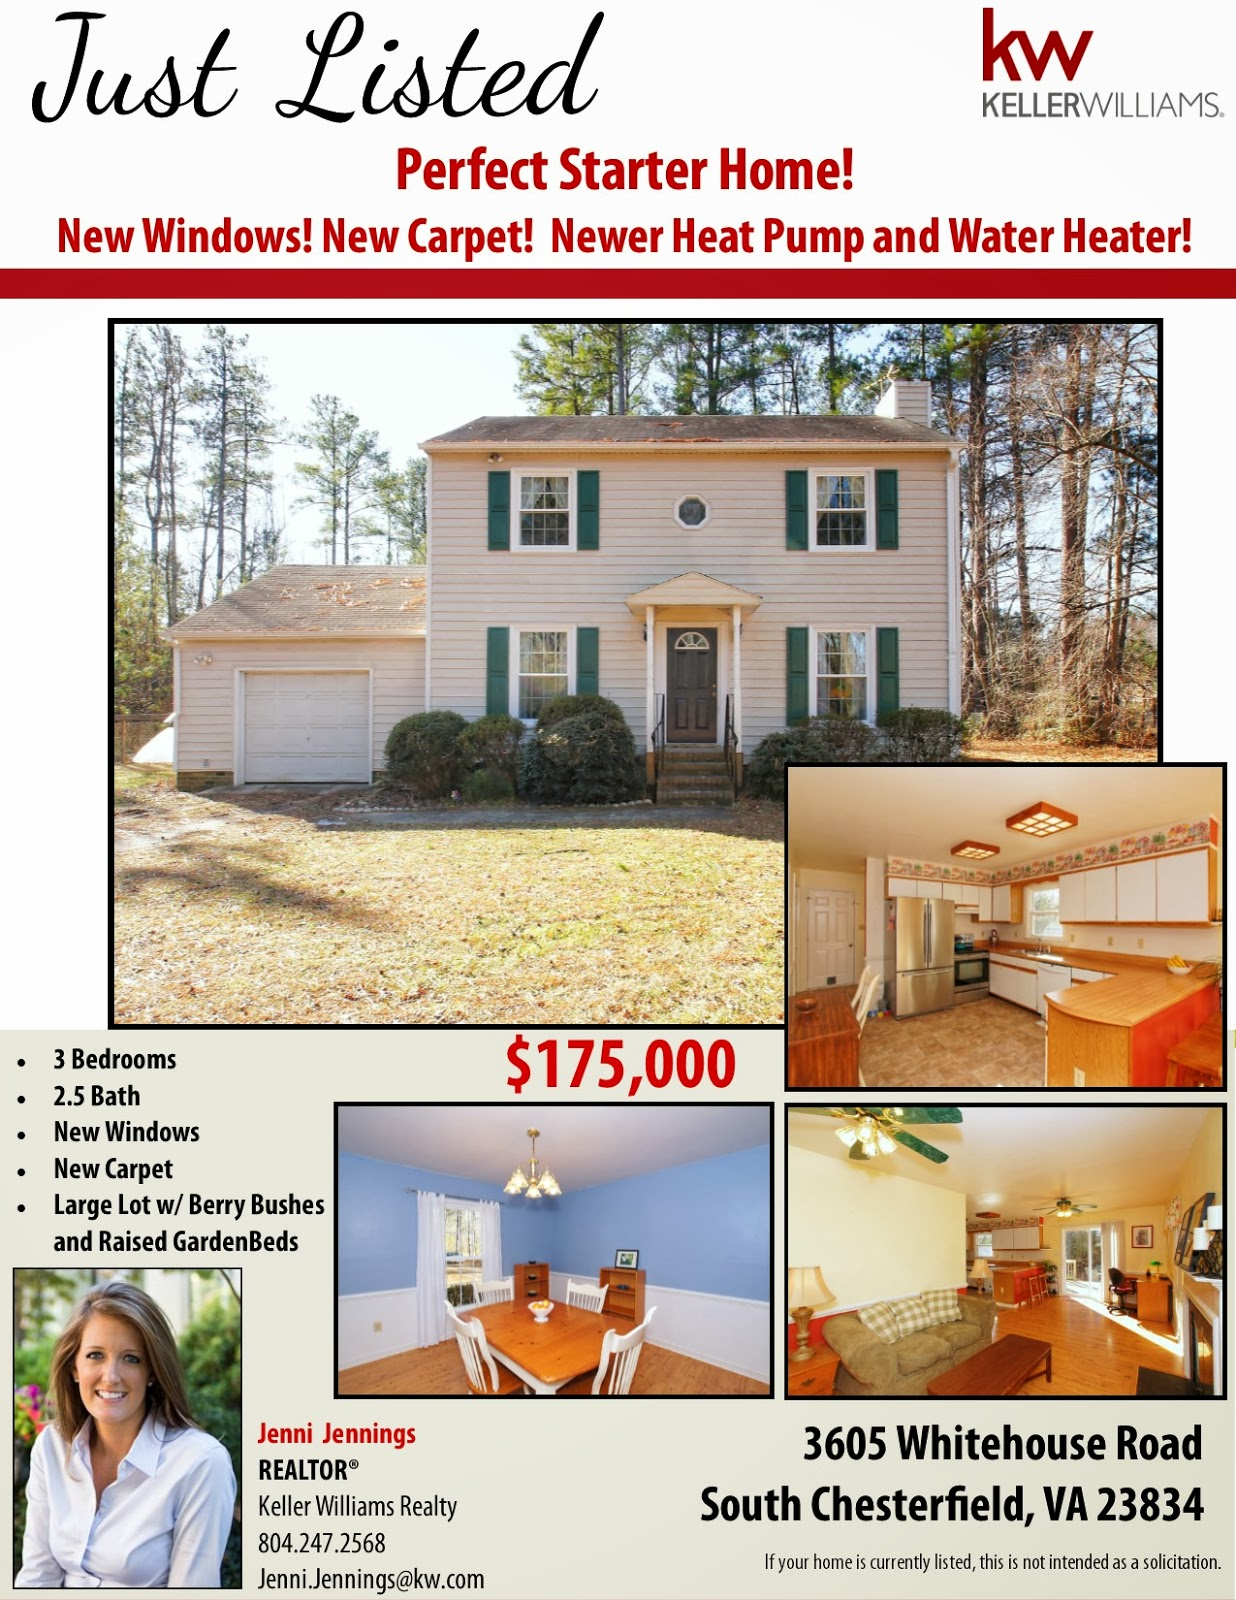 home search the jenni jennings team just listed perfect starter home